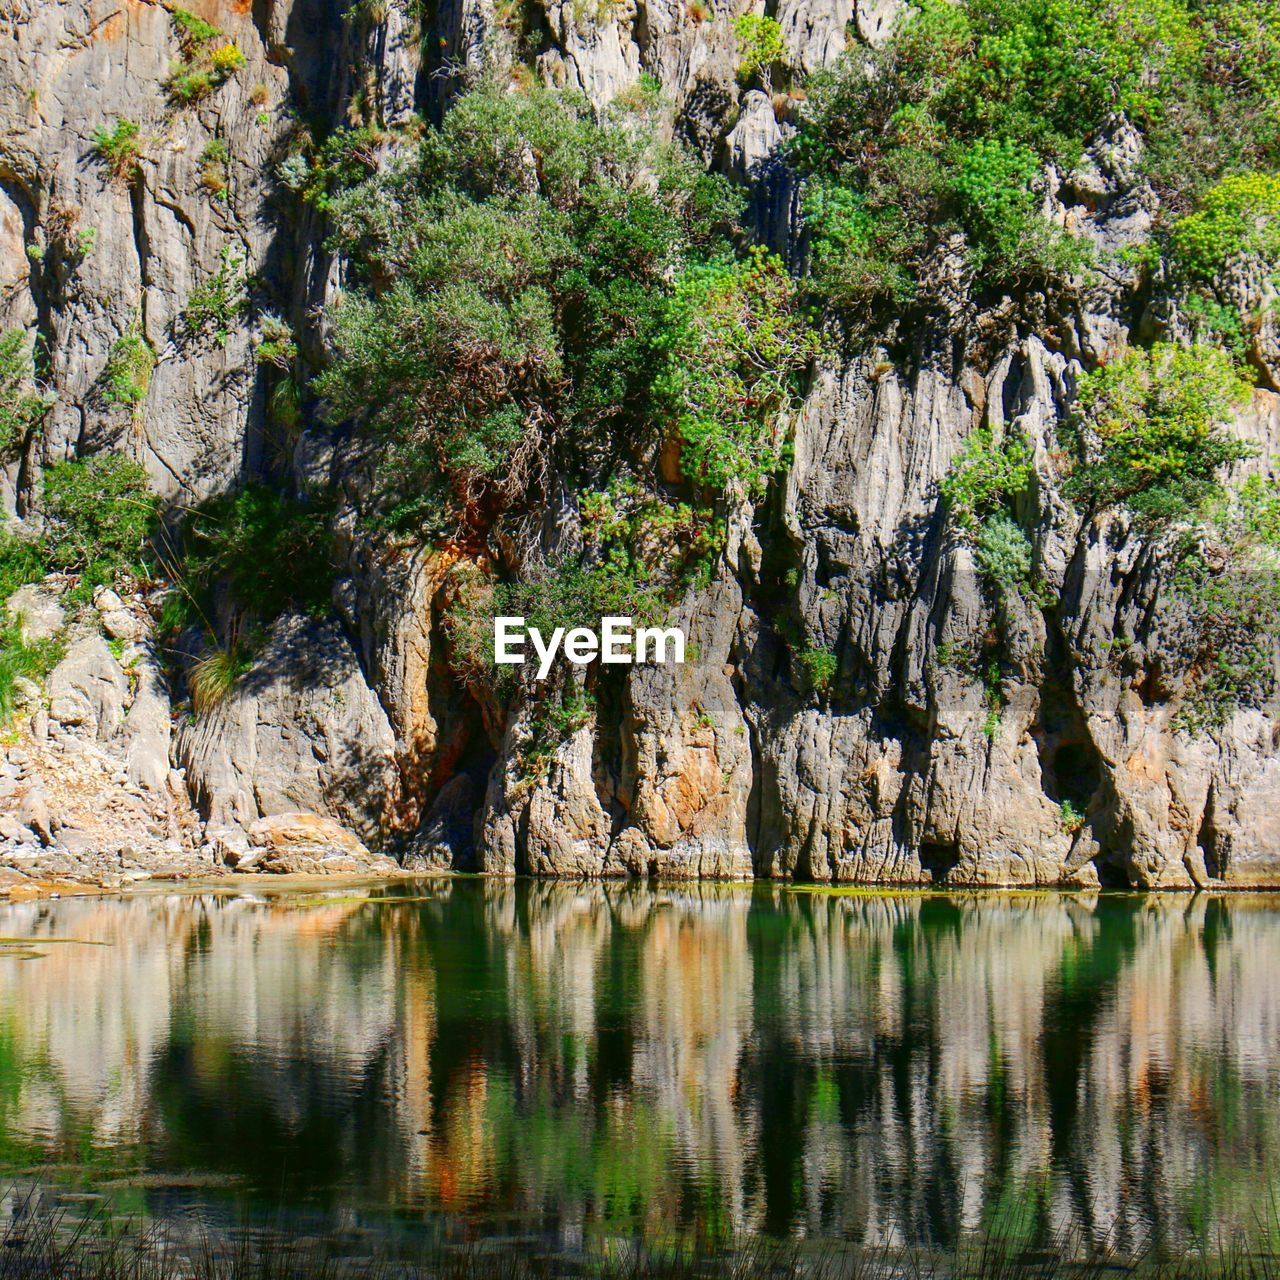 rock, rock formation, rock - object, beauty in nature, solid, tranquility, water, no people, day, nature, physical geography, reflection, geology, non-urban scene, tranquil scene, scenics - nature, plant, land, outdoors, eroded, formation